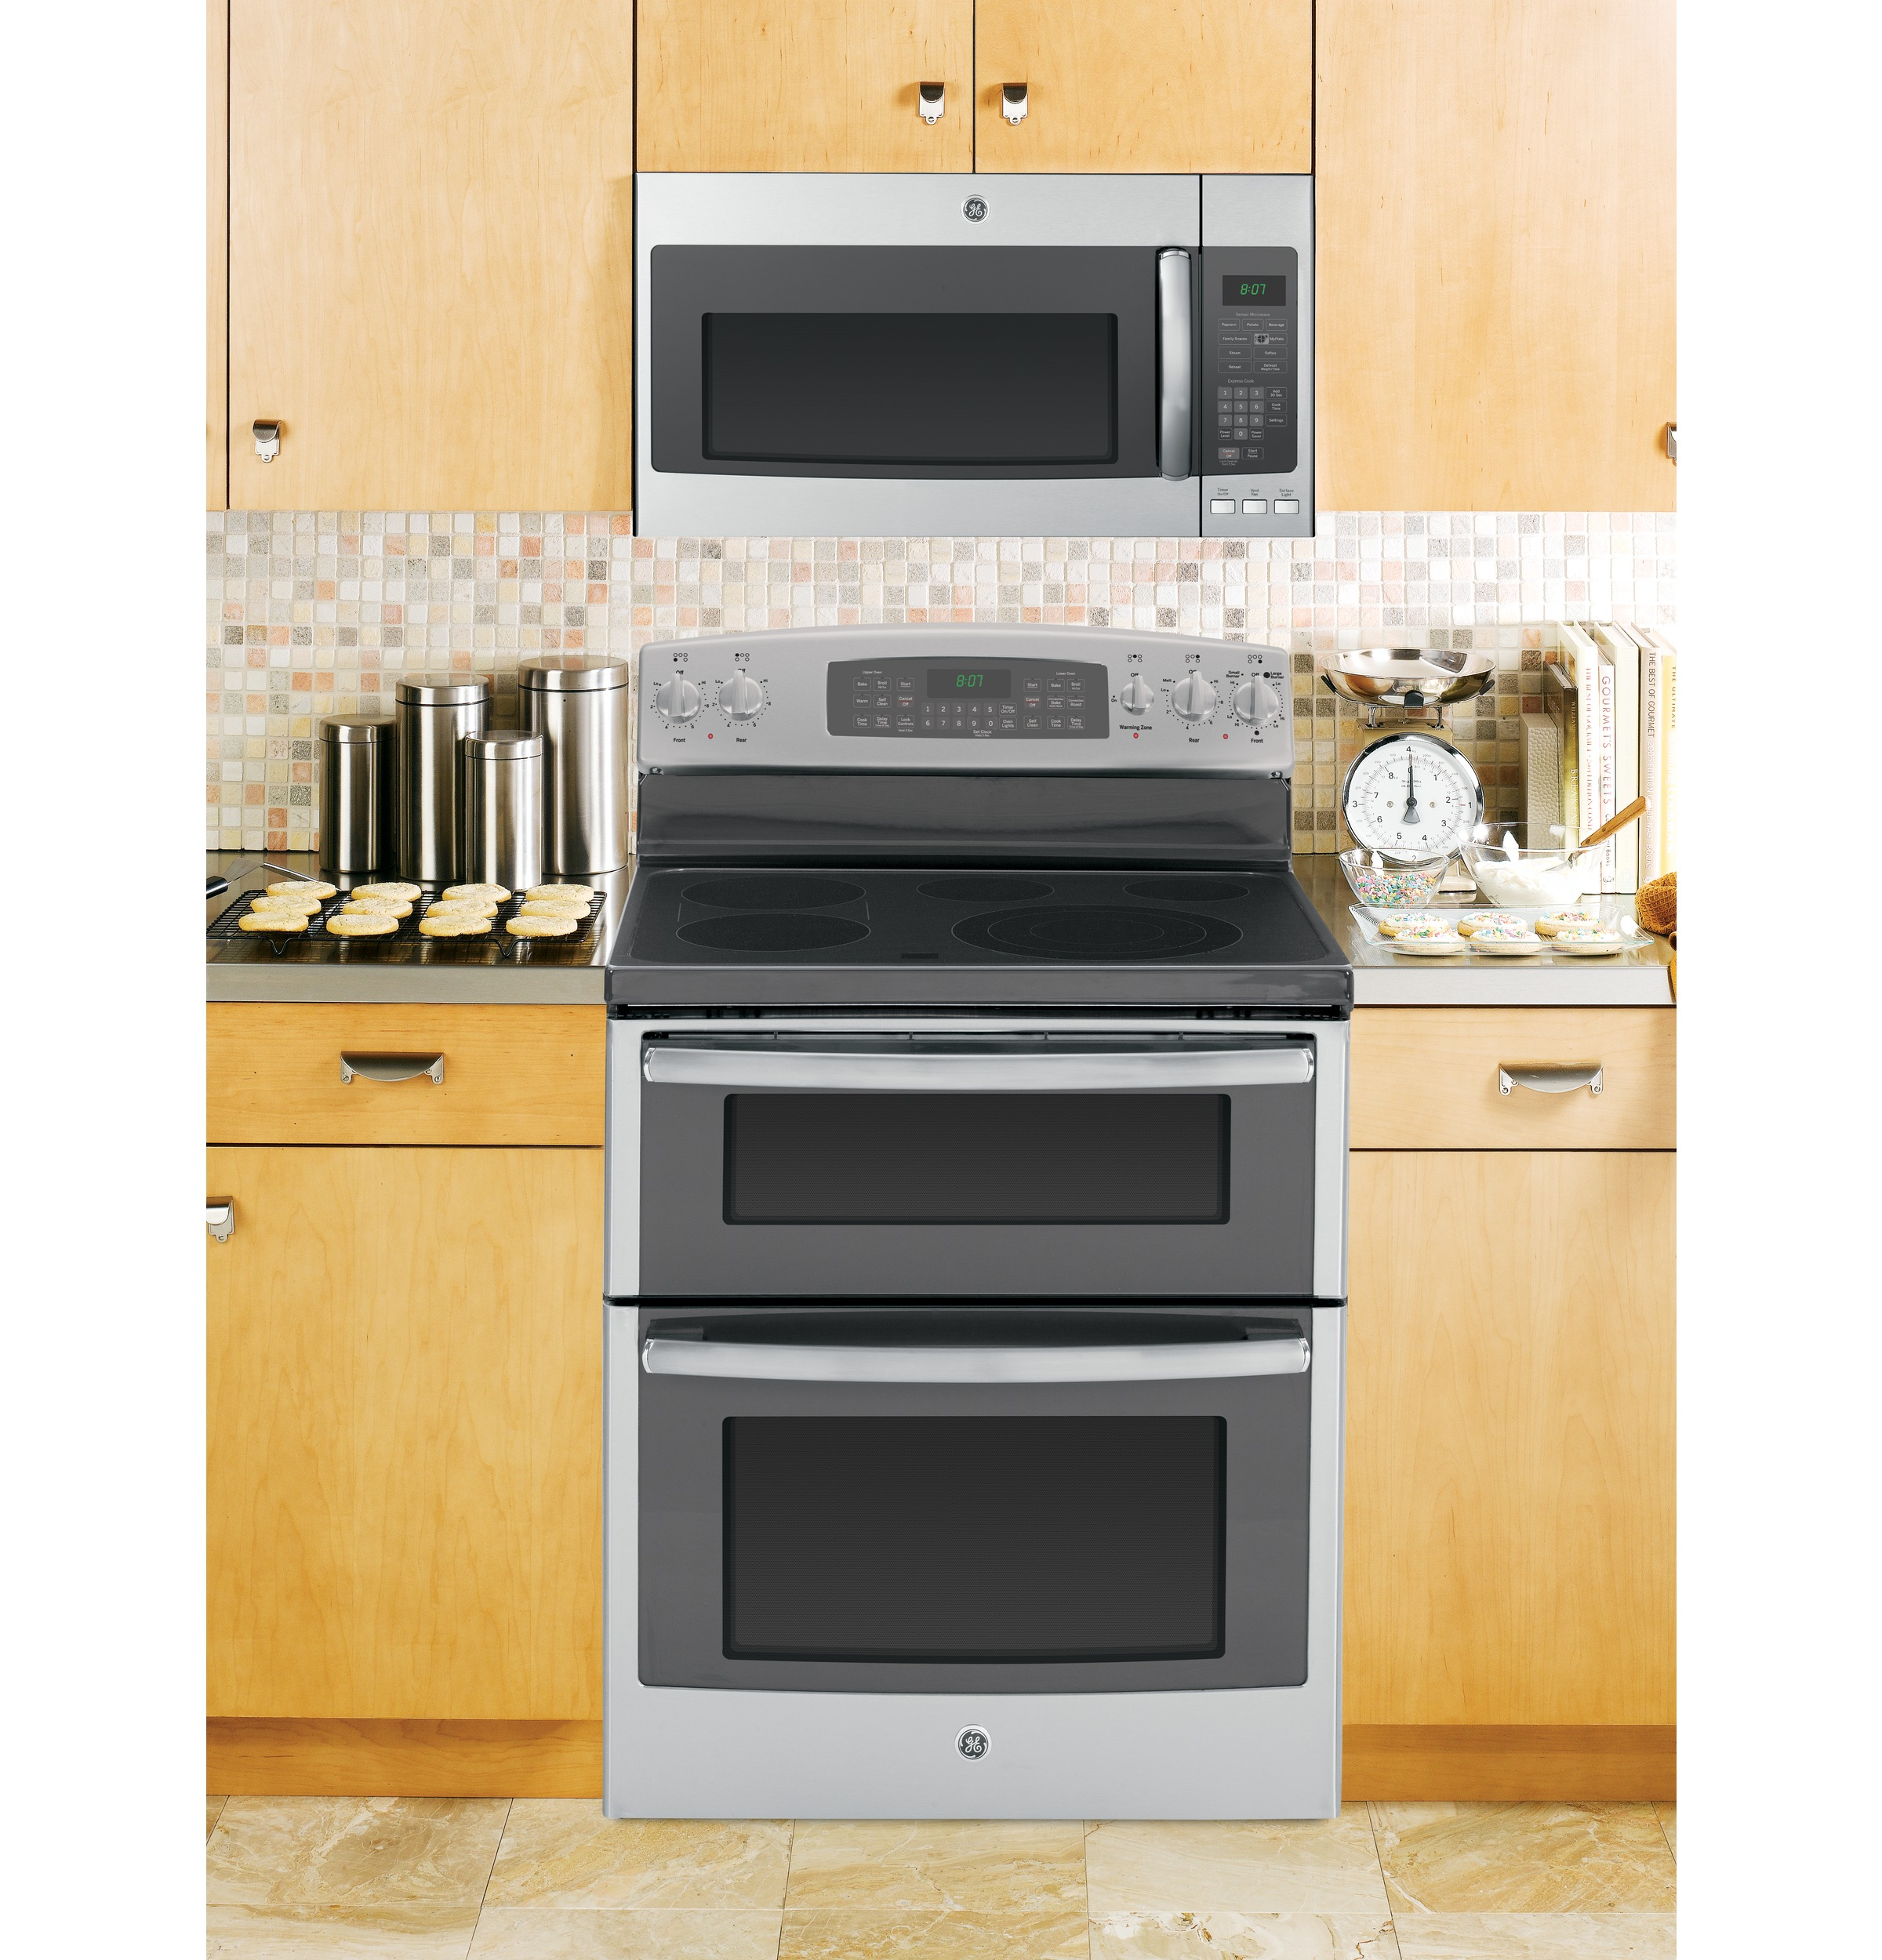 Microwave Oven With Gas Stove: GE Profile™ Series 1.9 Cu. Ft. Over-the-Range Microwave